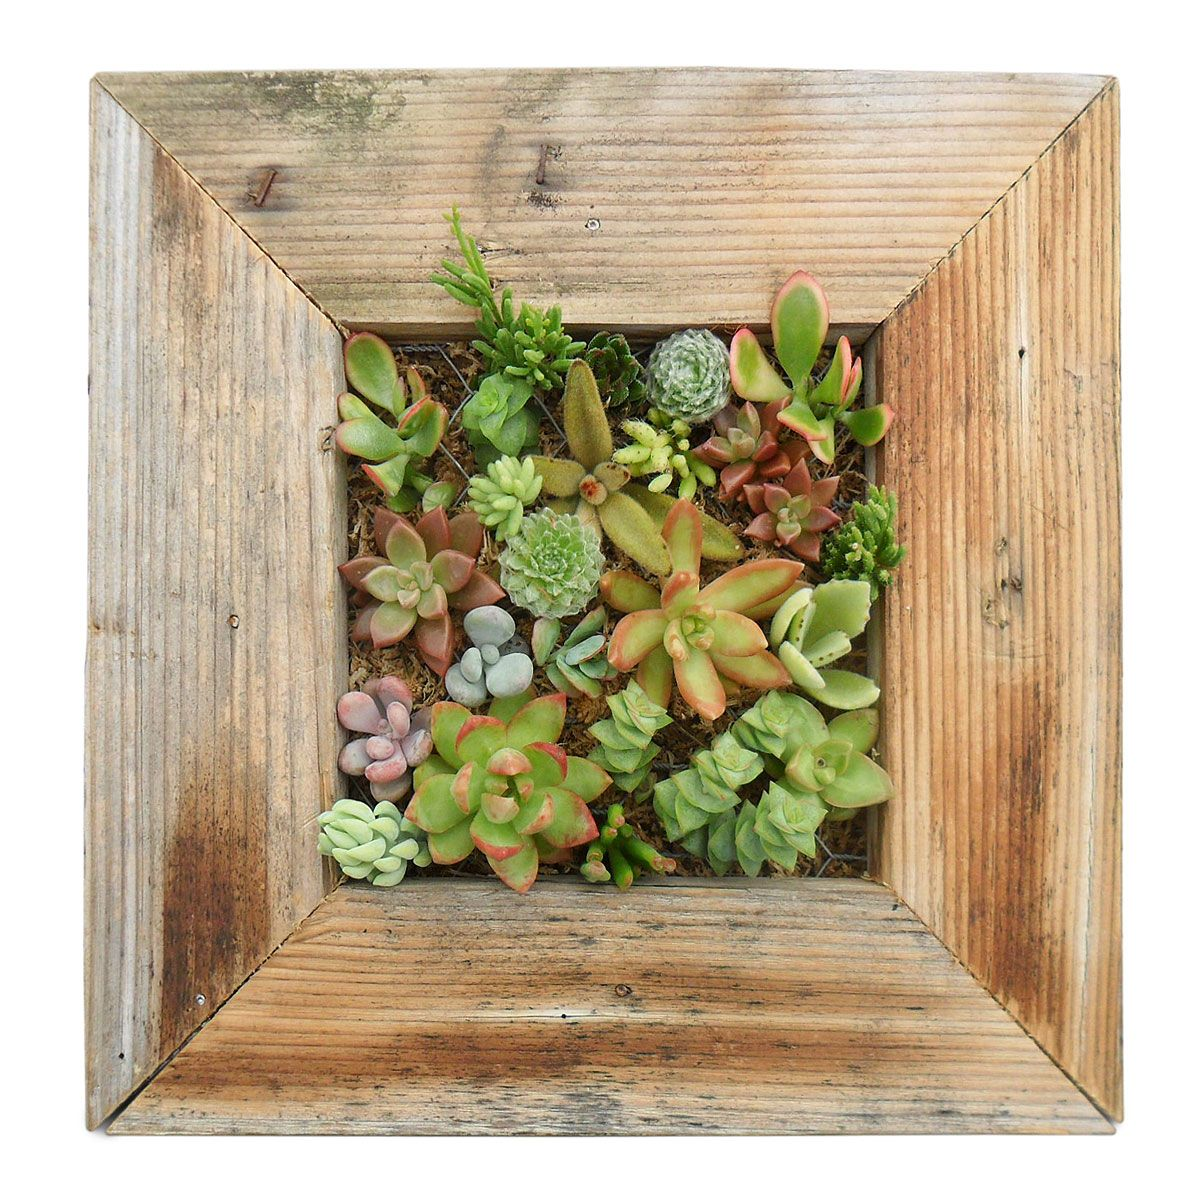 Americanmade Succulent Wall Planter Kit Made In San Go Ca What A Beautiful Decoration For Any The House My This Would Hang